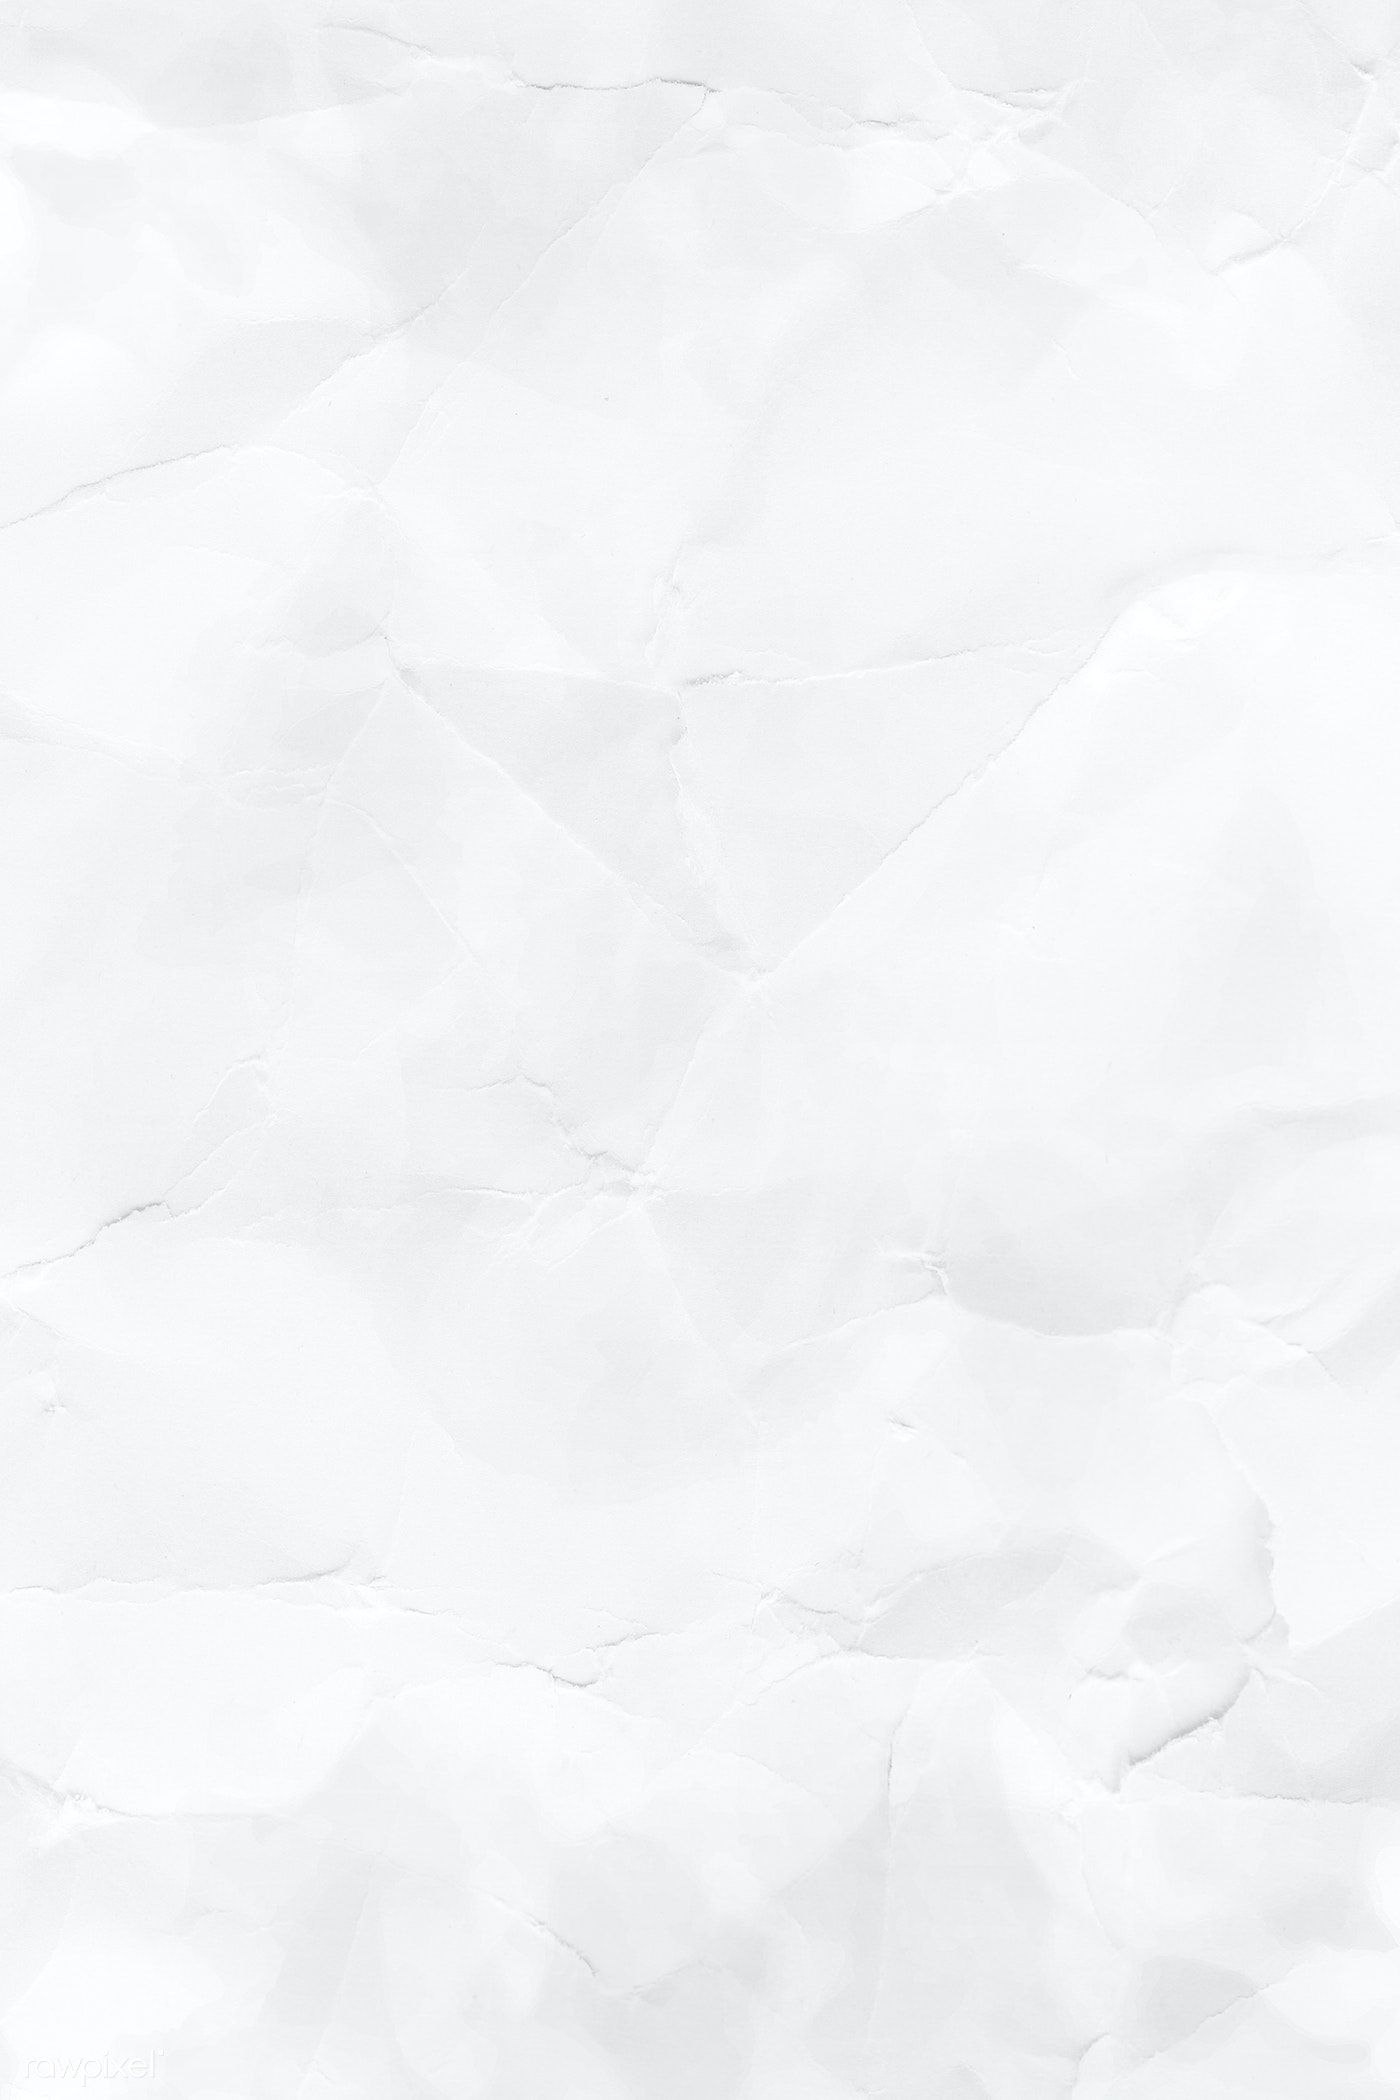 Download Premium Illustration Of Crumpled White Paper Textured Background Paper Texture Background White White Paper Texture Background Paper Texture White